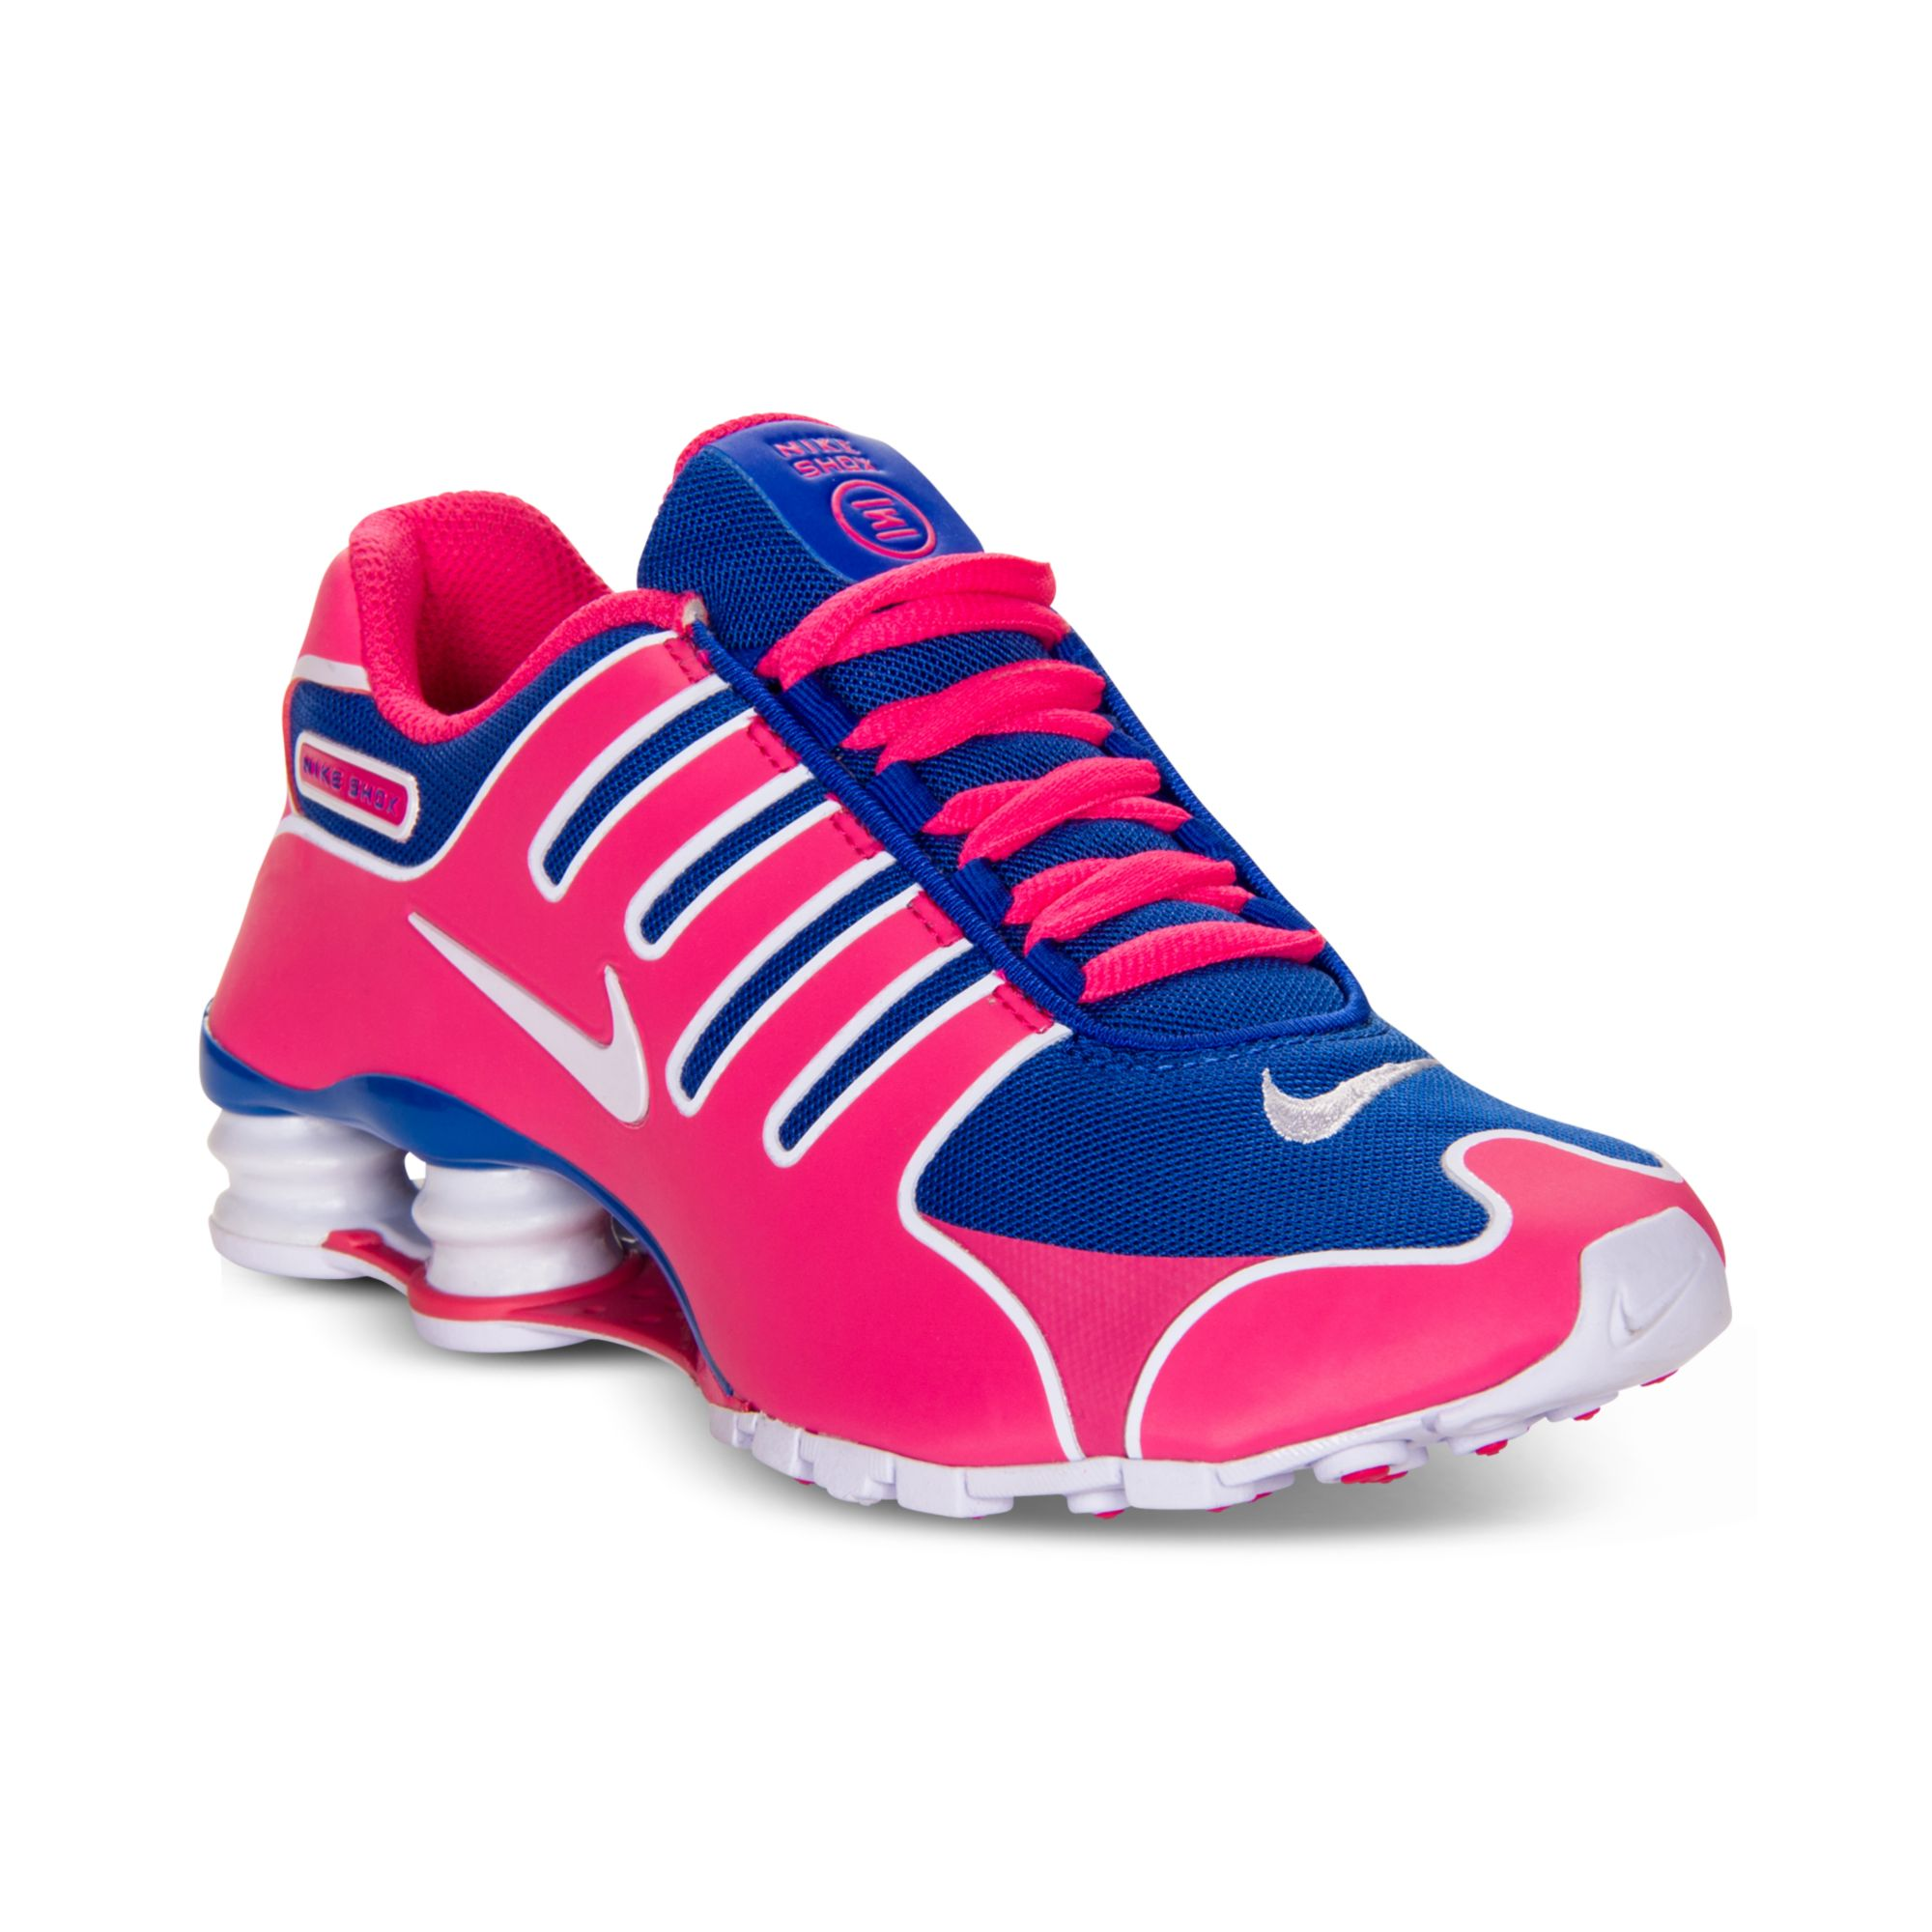 Lyst - Nike Shox Nz Ns Running Sneakers in Pink 3782cbd4f31be